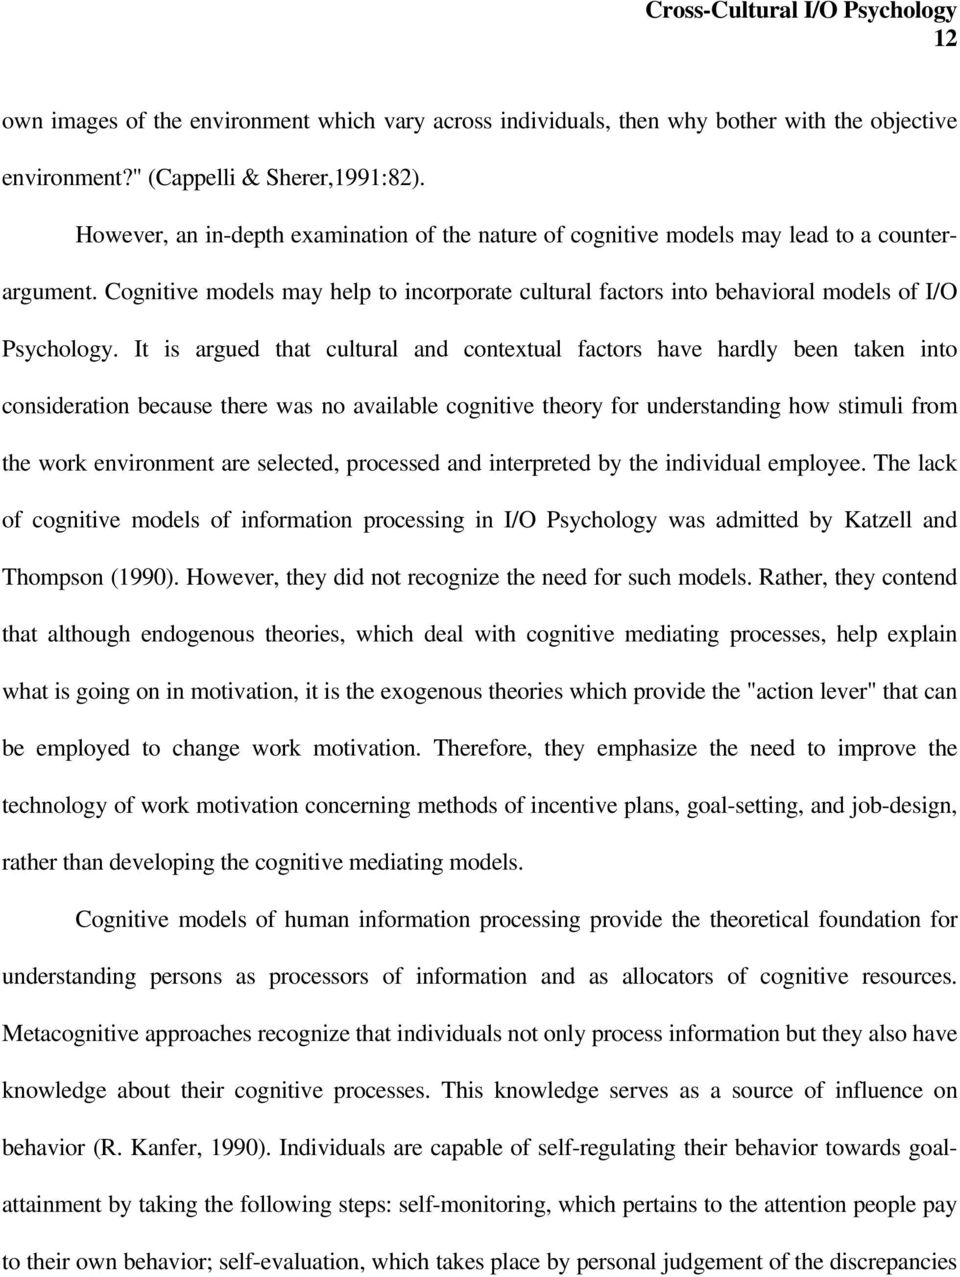 It is argued that cultural and contextual factors have hardly been taken into consideration because there was no available cognitive theory for understanding how stimuli from the work environment are